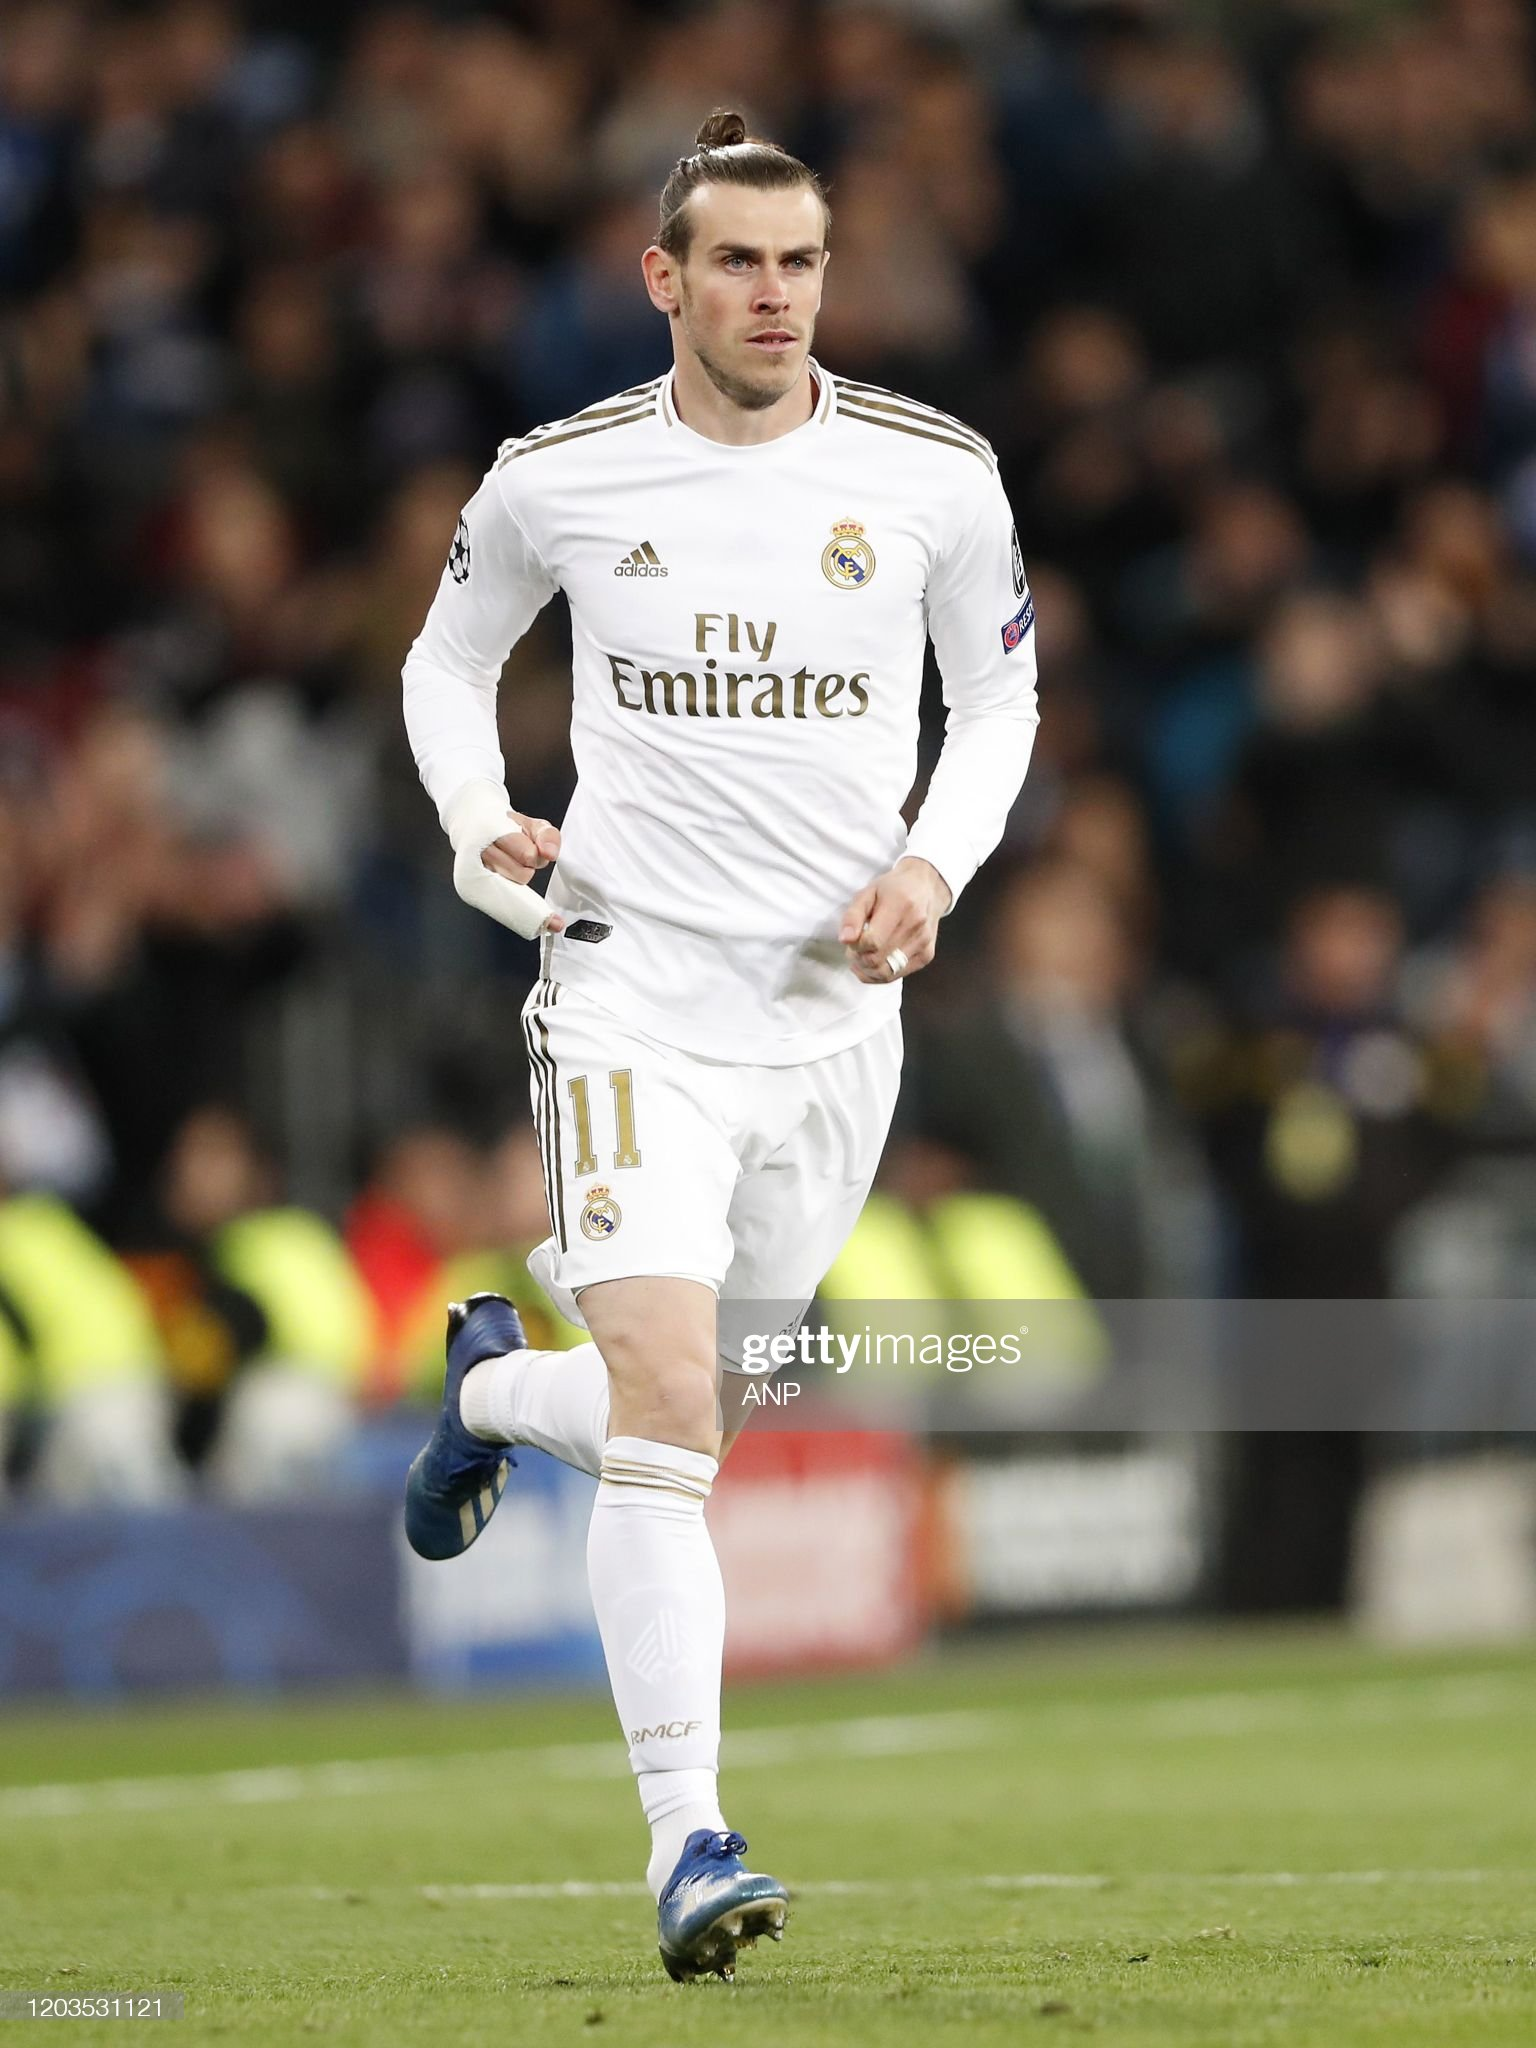 ¿Cuánto mide Gareth Bale? - Altura - Real height Gareth-bale-of-real-madrid-during-the-uefa-champions-league-round-of-picture-id1203531121?s=2048x2048